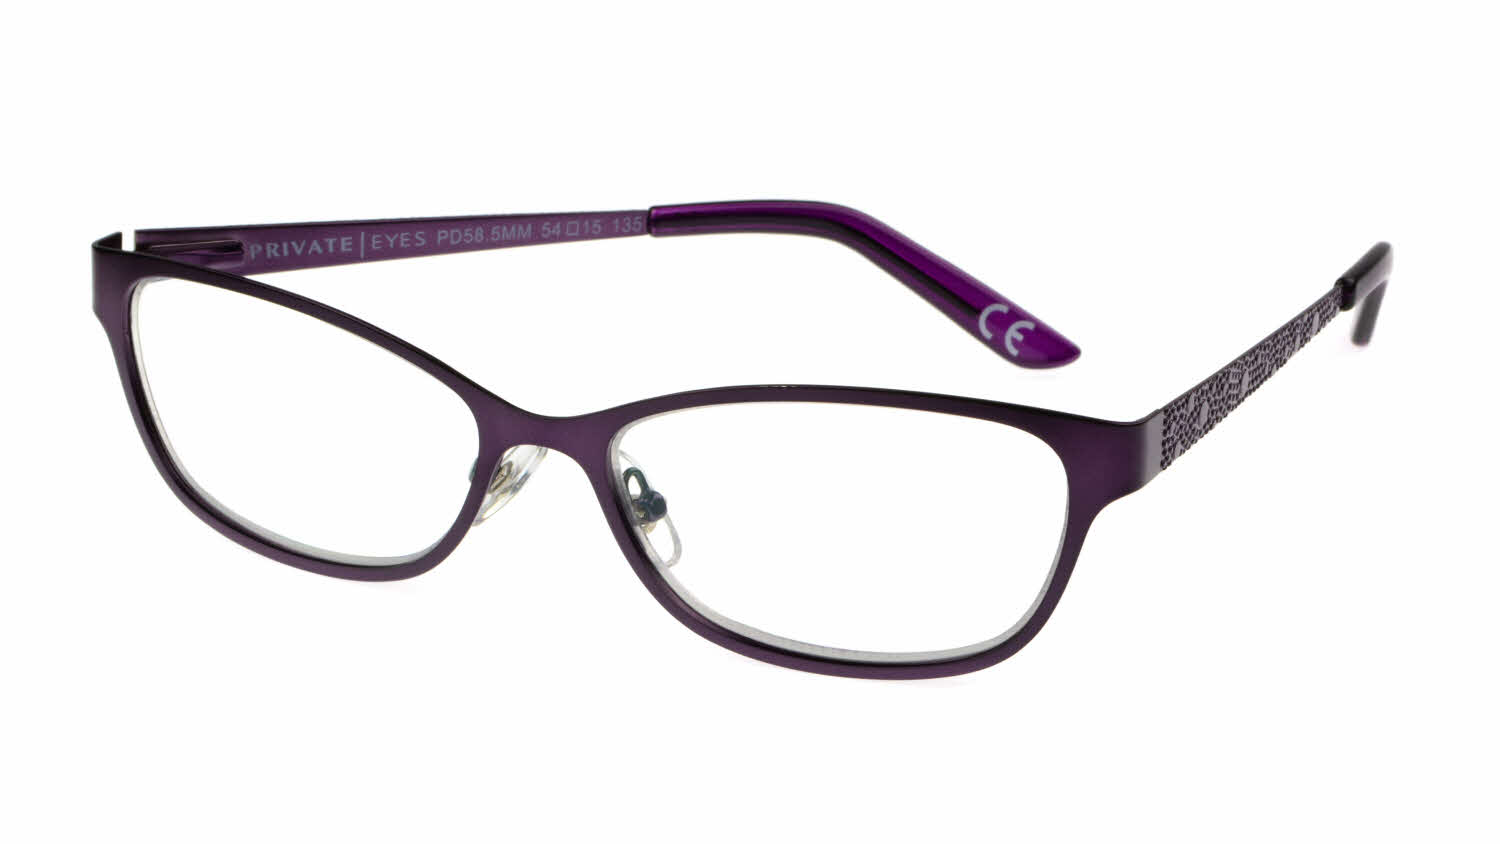 016994a39e Private Eyes Readers Polly (PE231) Eyeglasses